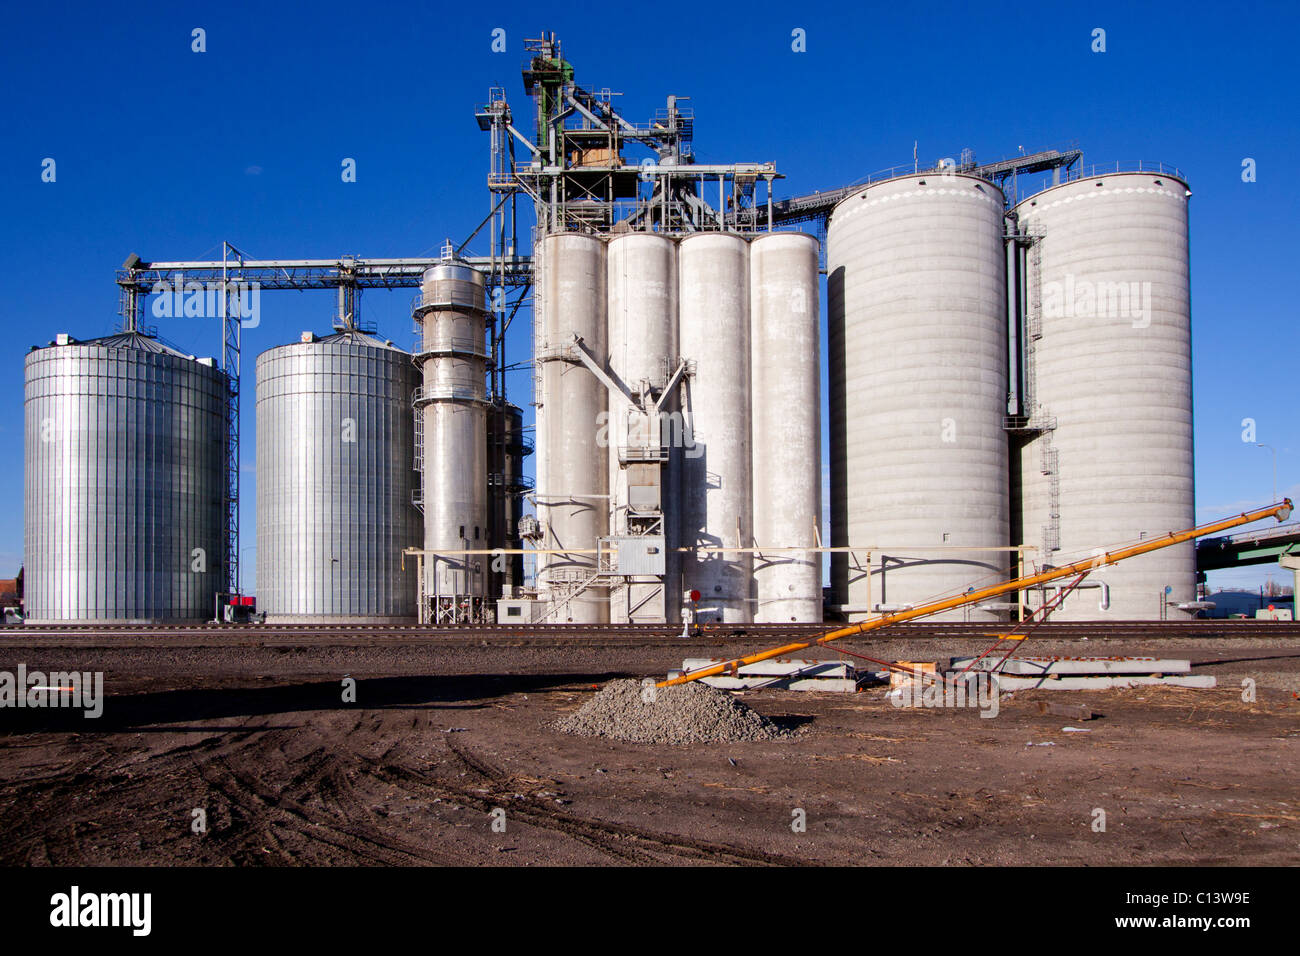 Agricultural silos in Grand Island, Nebraska, USA, 2/17/2011 - Stock Image